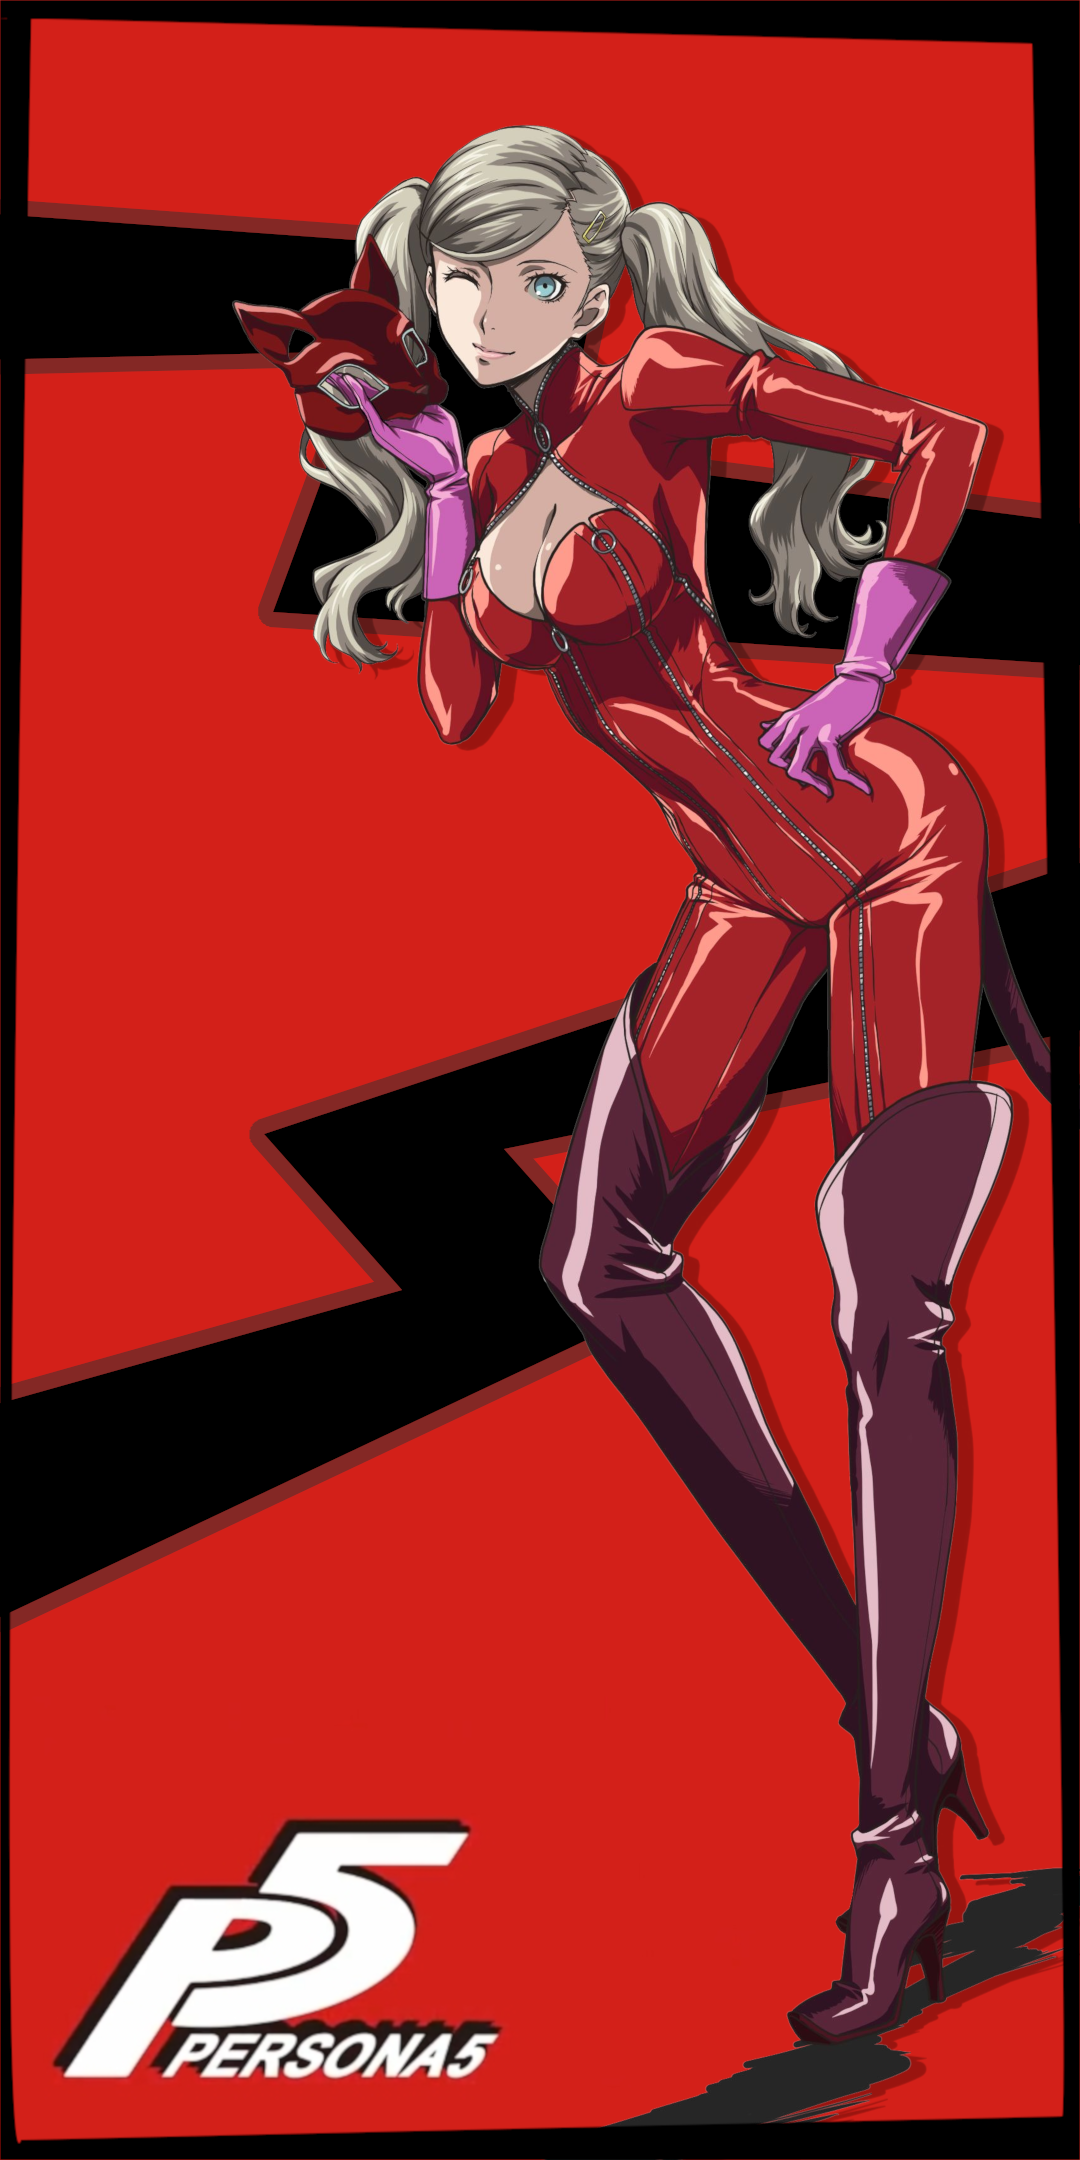 Ann Takamaki Phone Wallpaper 18 9 By Ganedikt On Deviantart